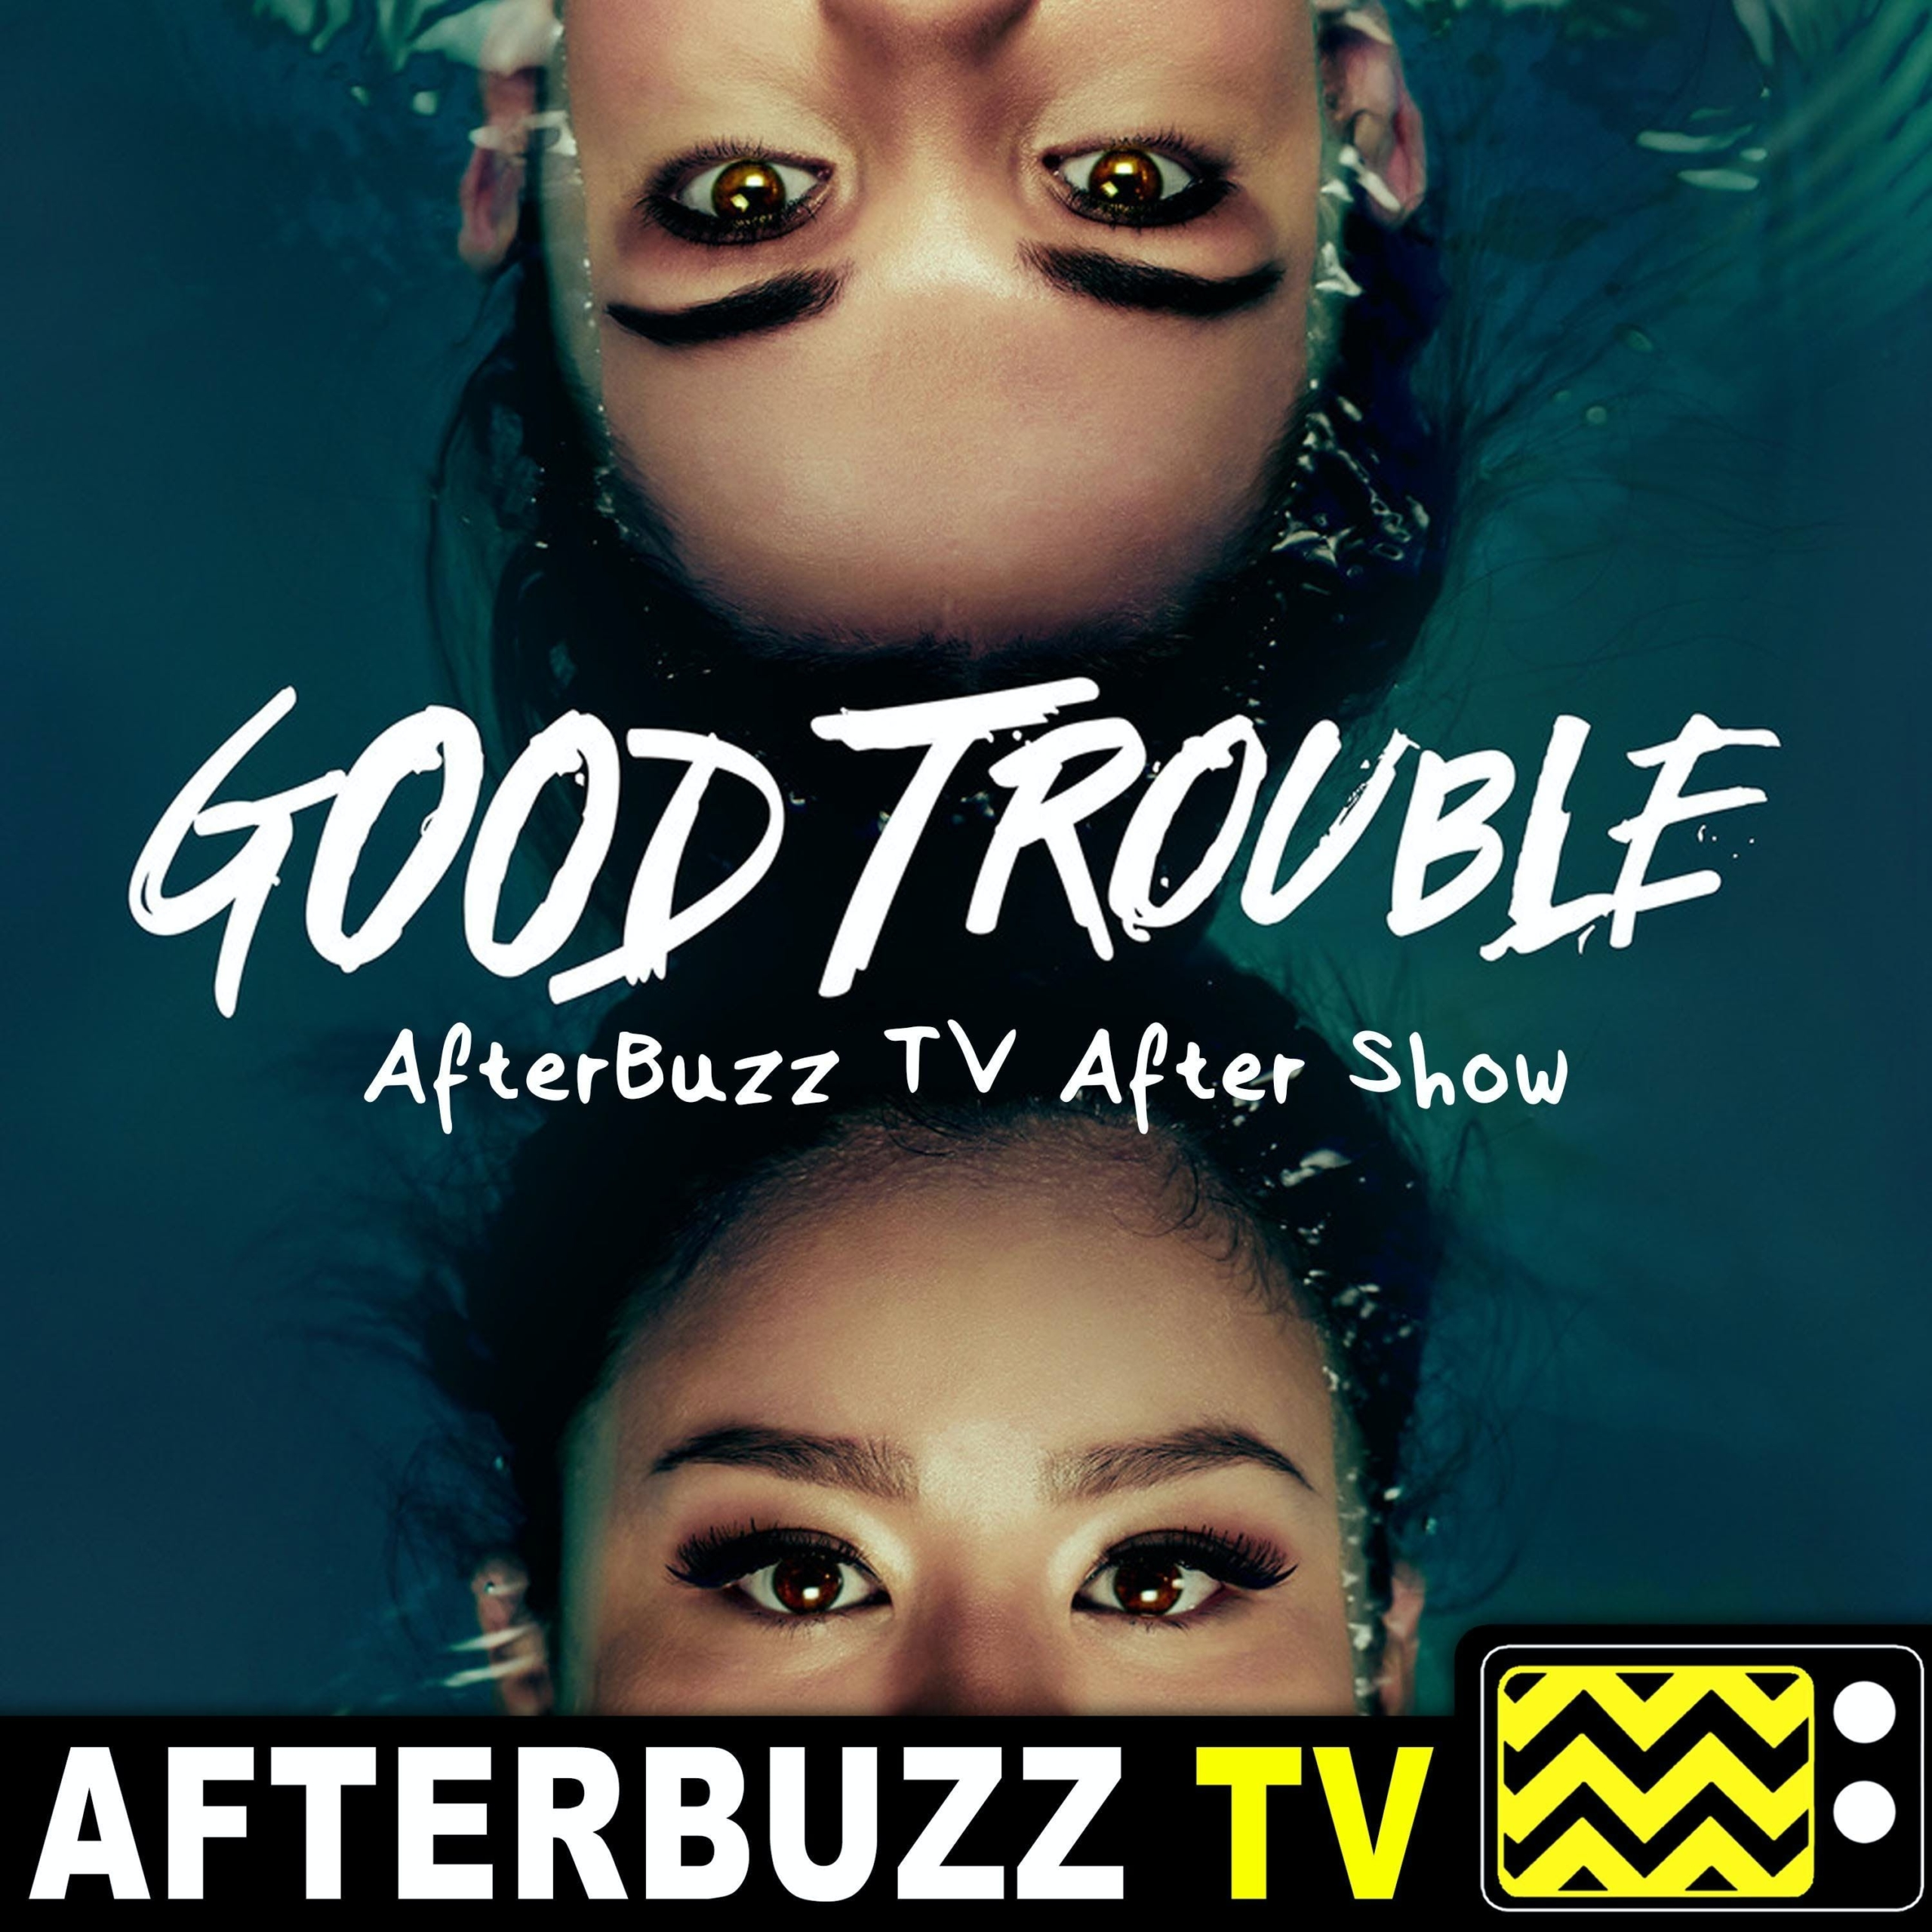 Good Trouble Dream Team of Dhruv and Sherry! – S2 E19